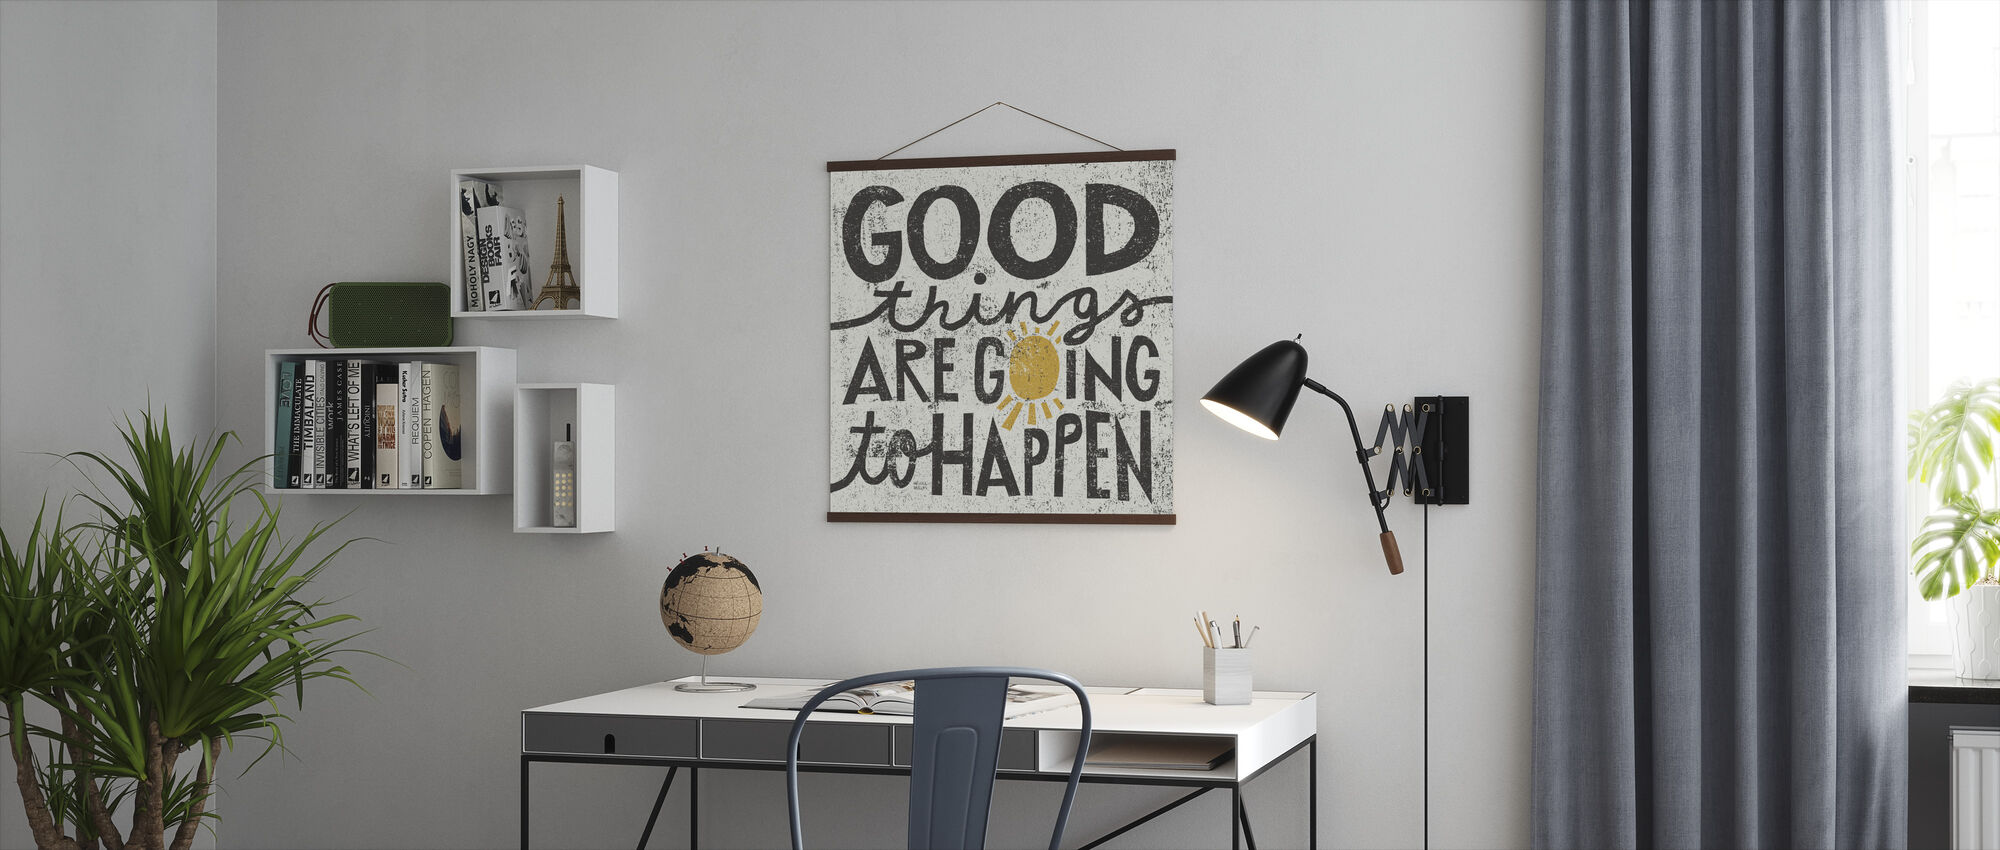 Good Things are Going to Happen - Poster - Office